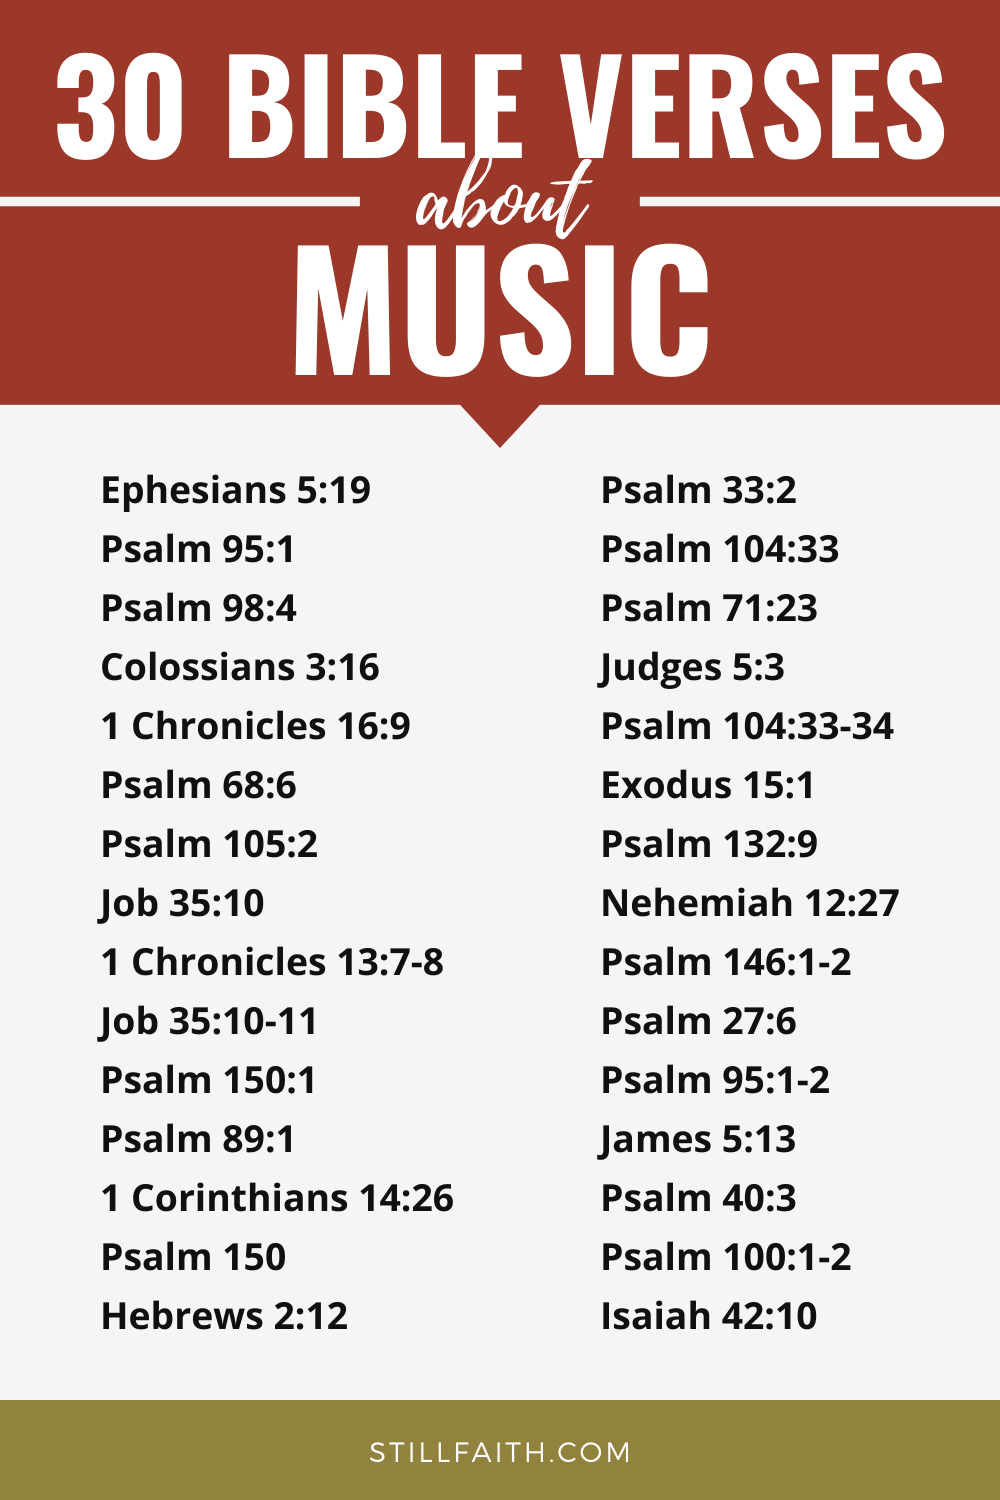 243 Bible Verses about Music